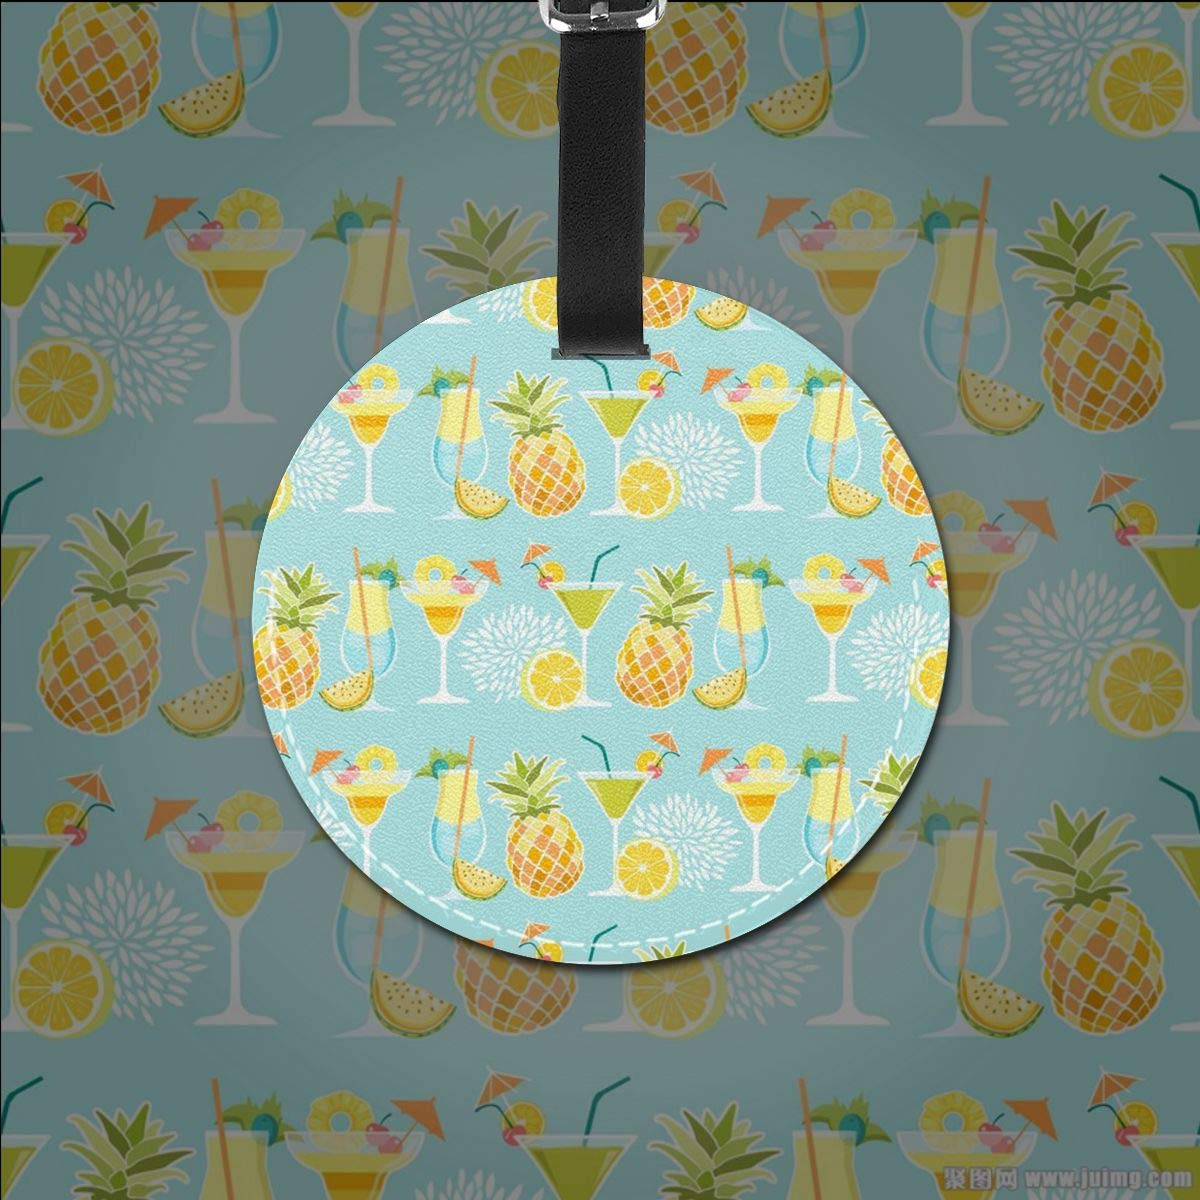 RITGOWWV PU Leather Luggage Tags 3D Print Summer Pineapples Suitcase Labels Bag Travel Accessories